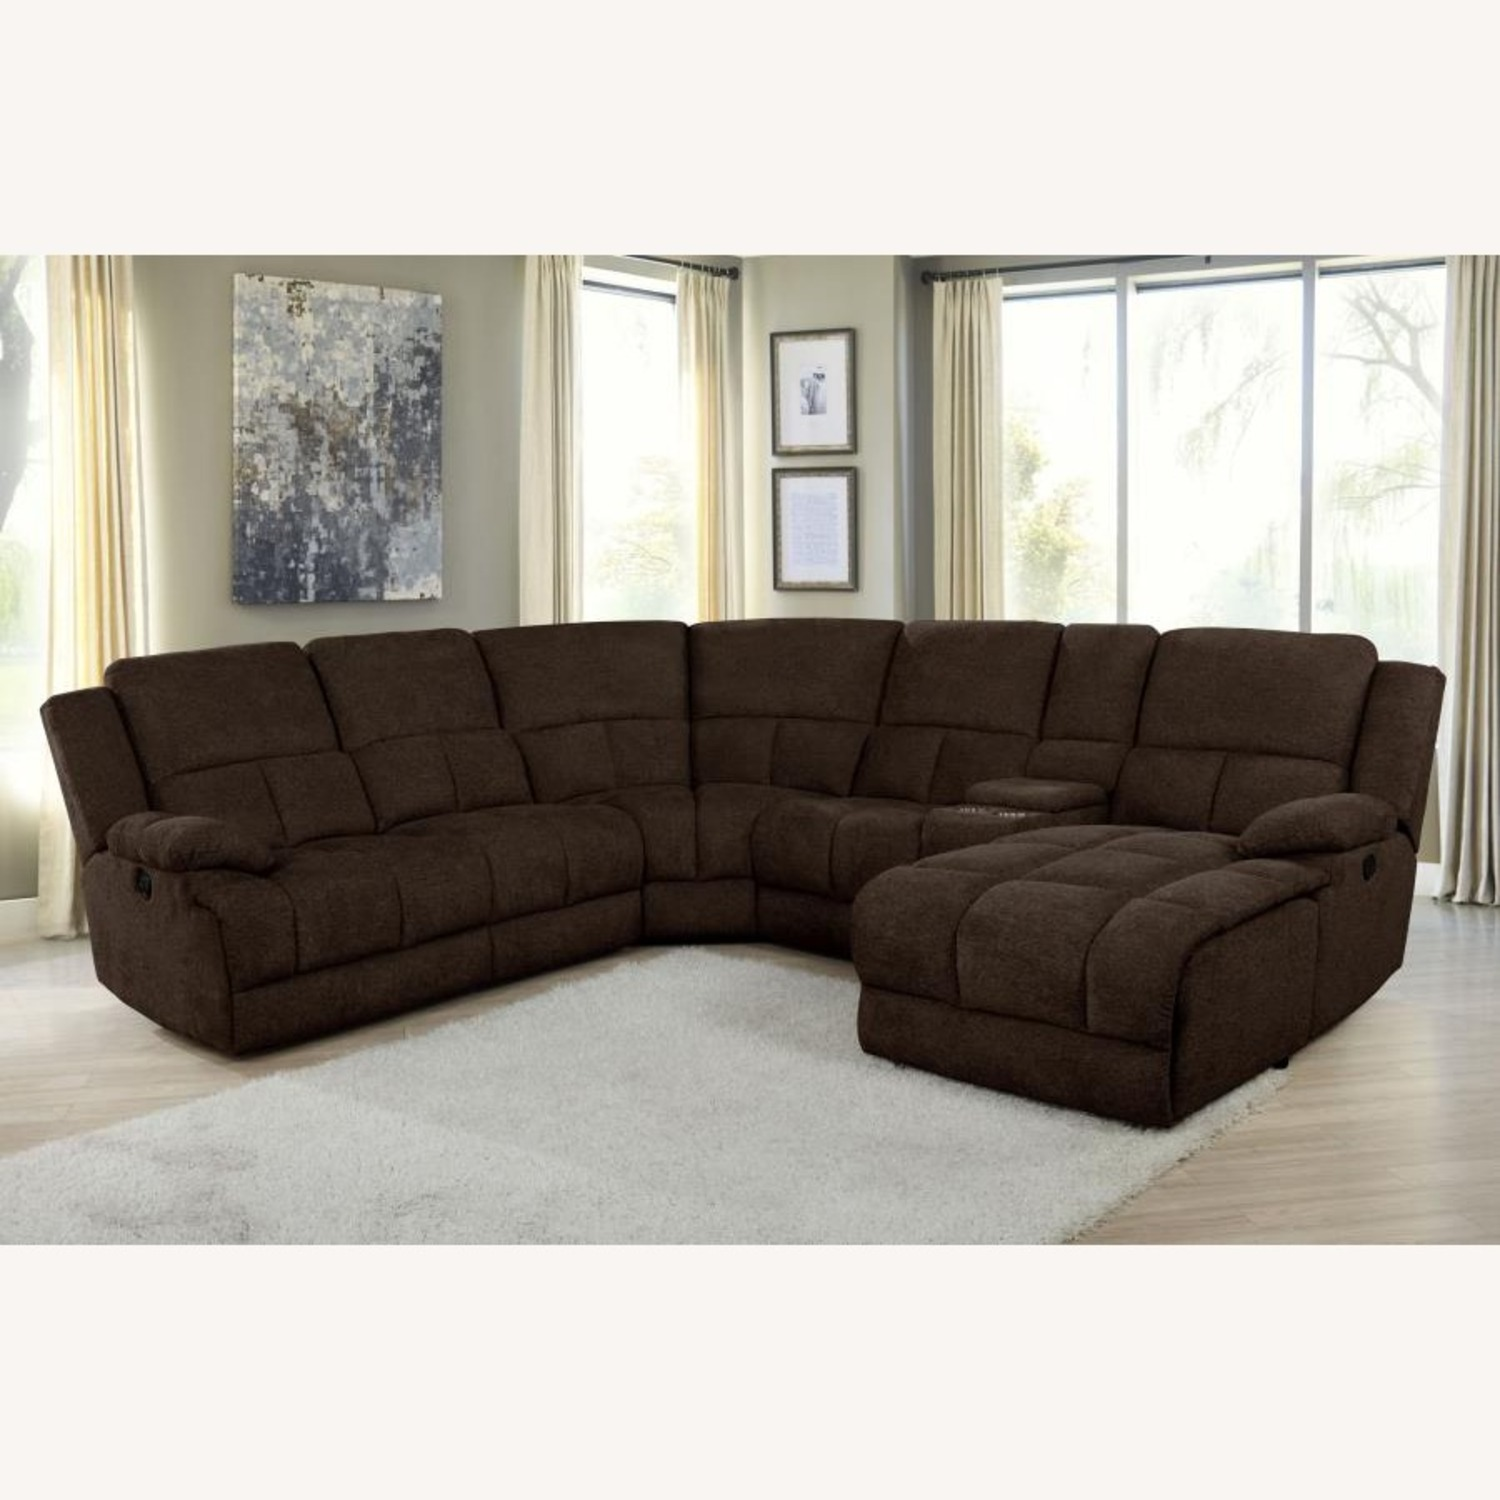 Motion Sectional In Brown Performance Fabric - image-13